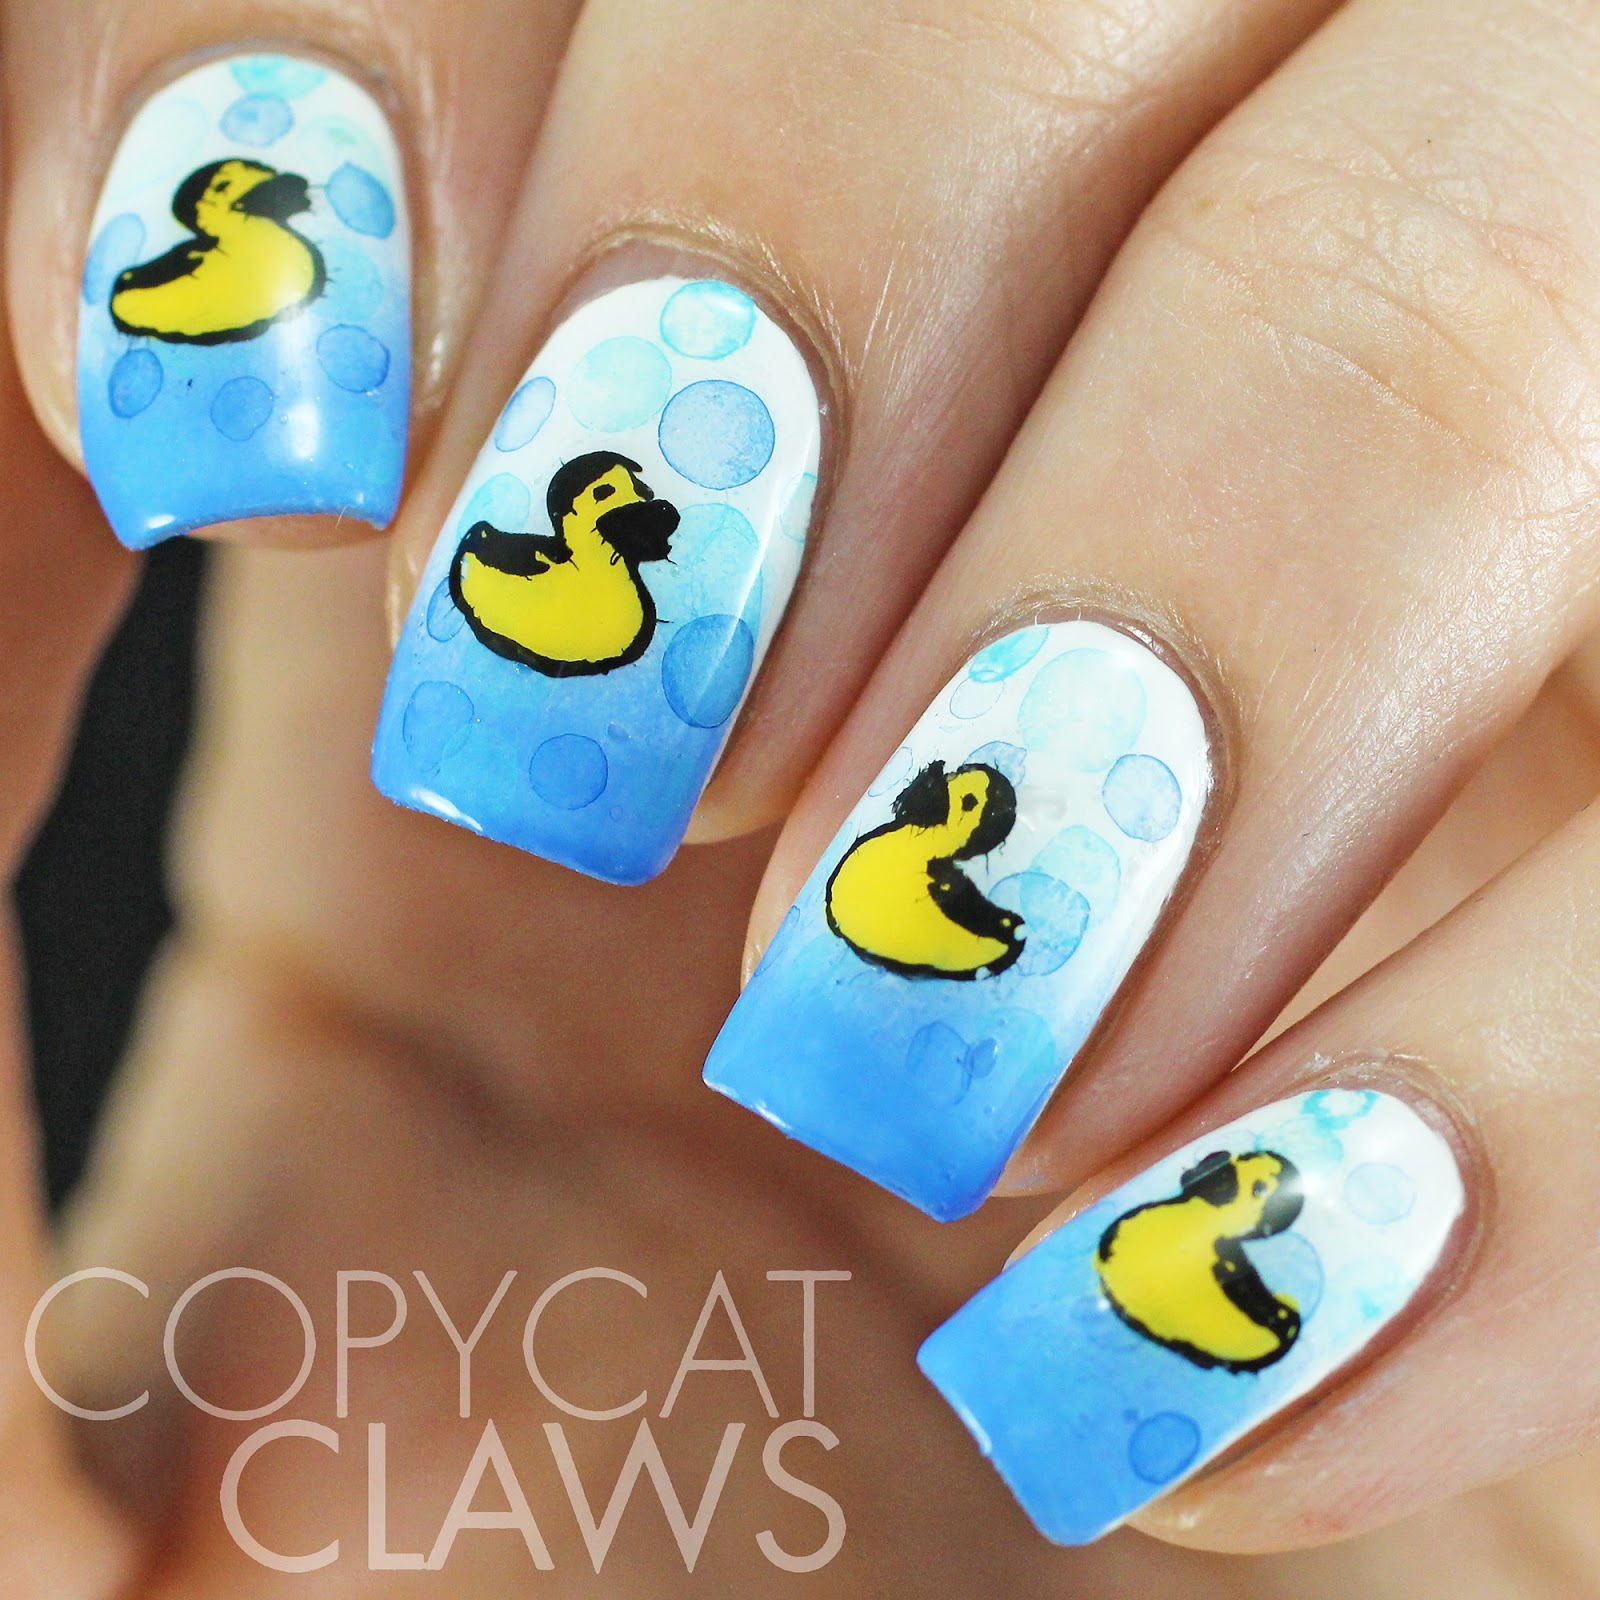 Copycat Claws The Digit Al Dozen Does Childhood Day 3 Rubber Duckies